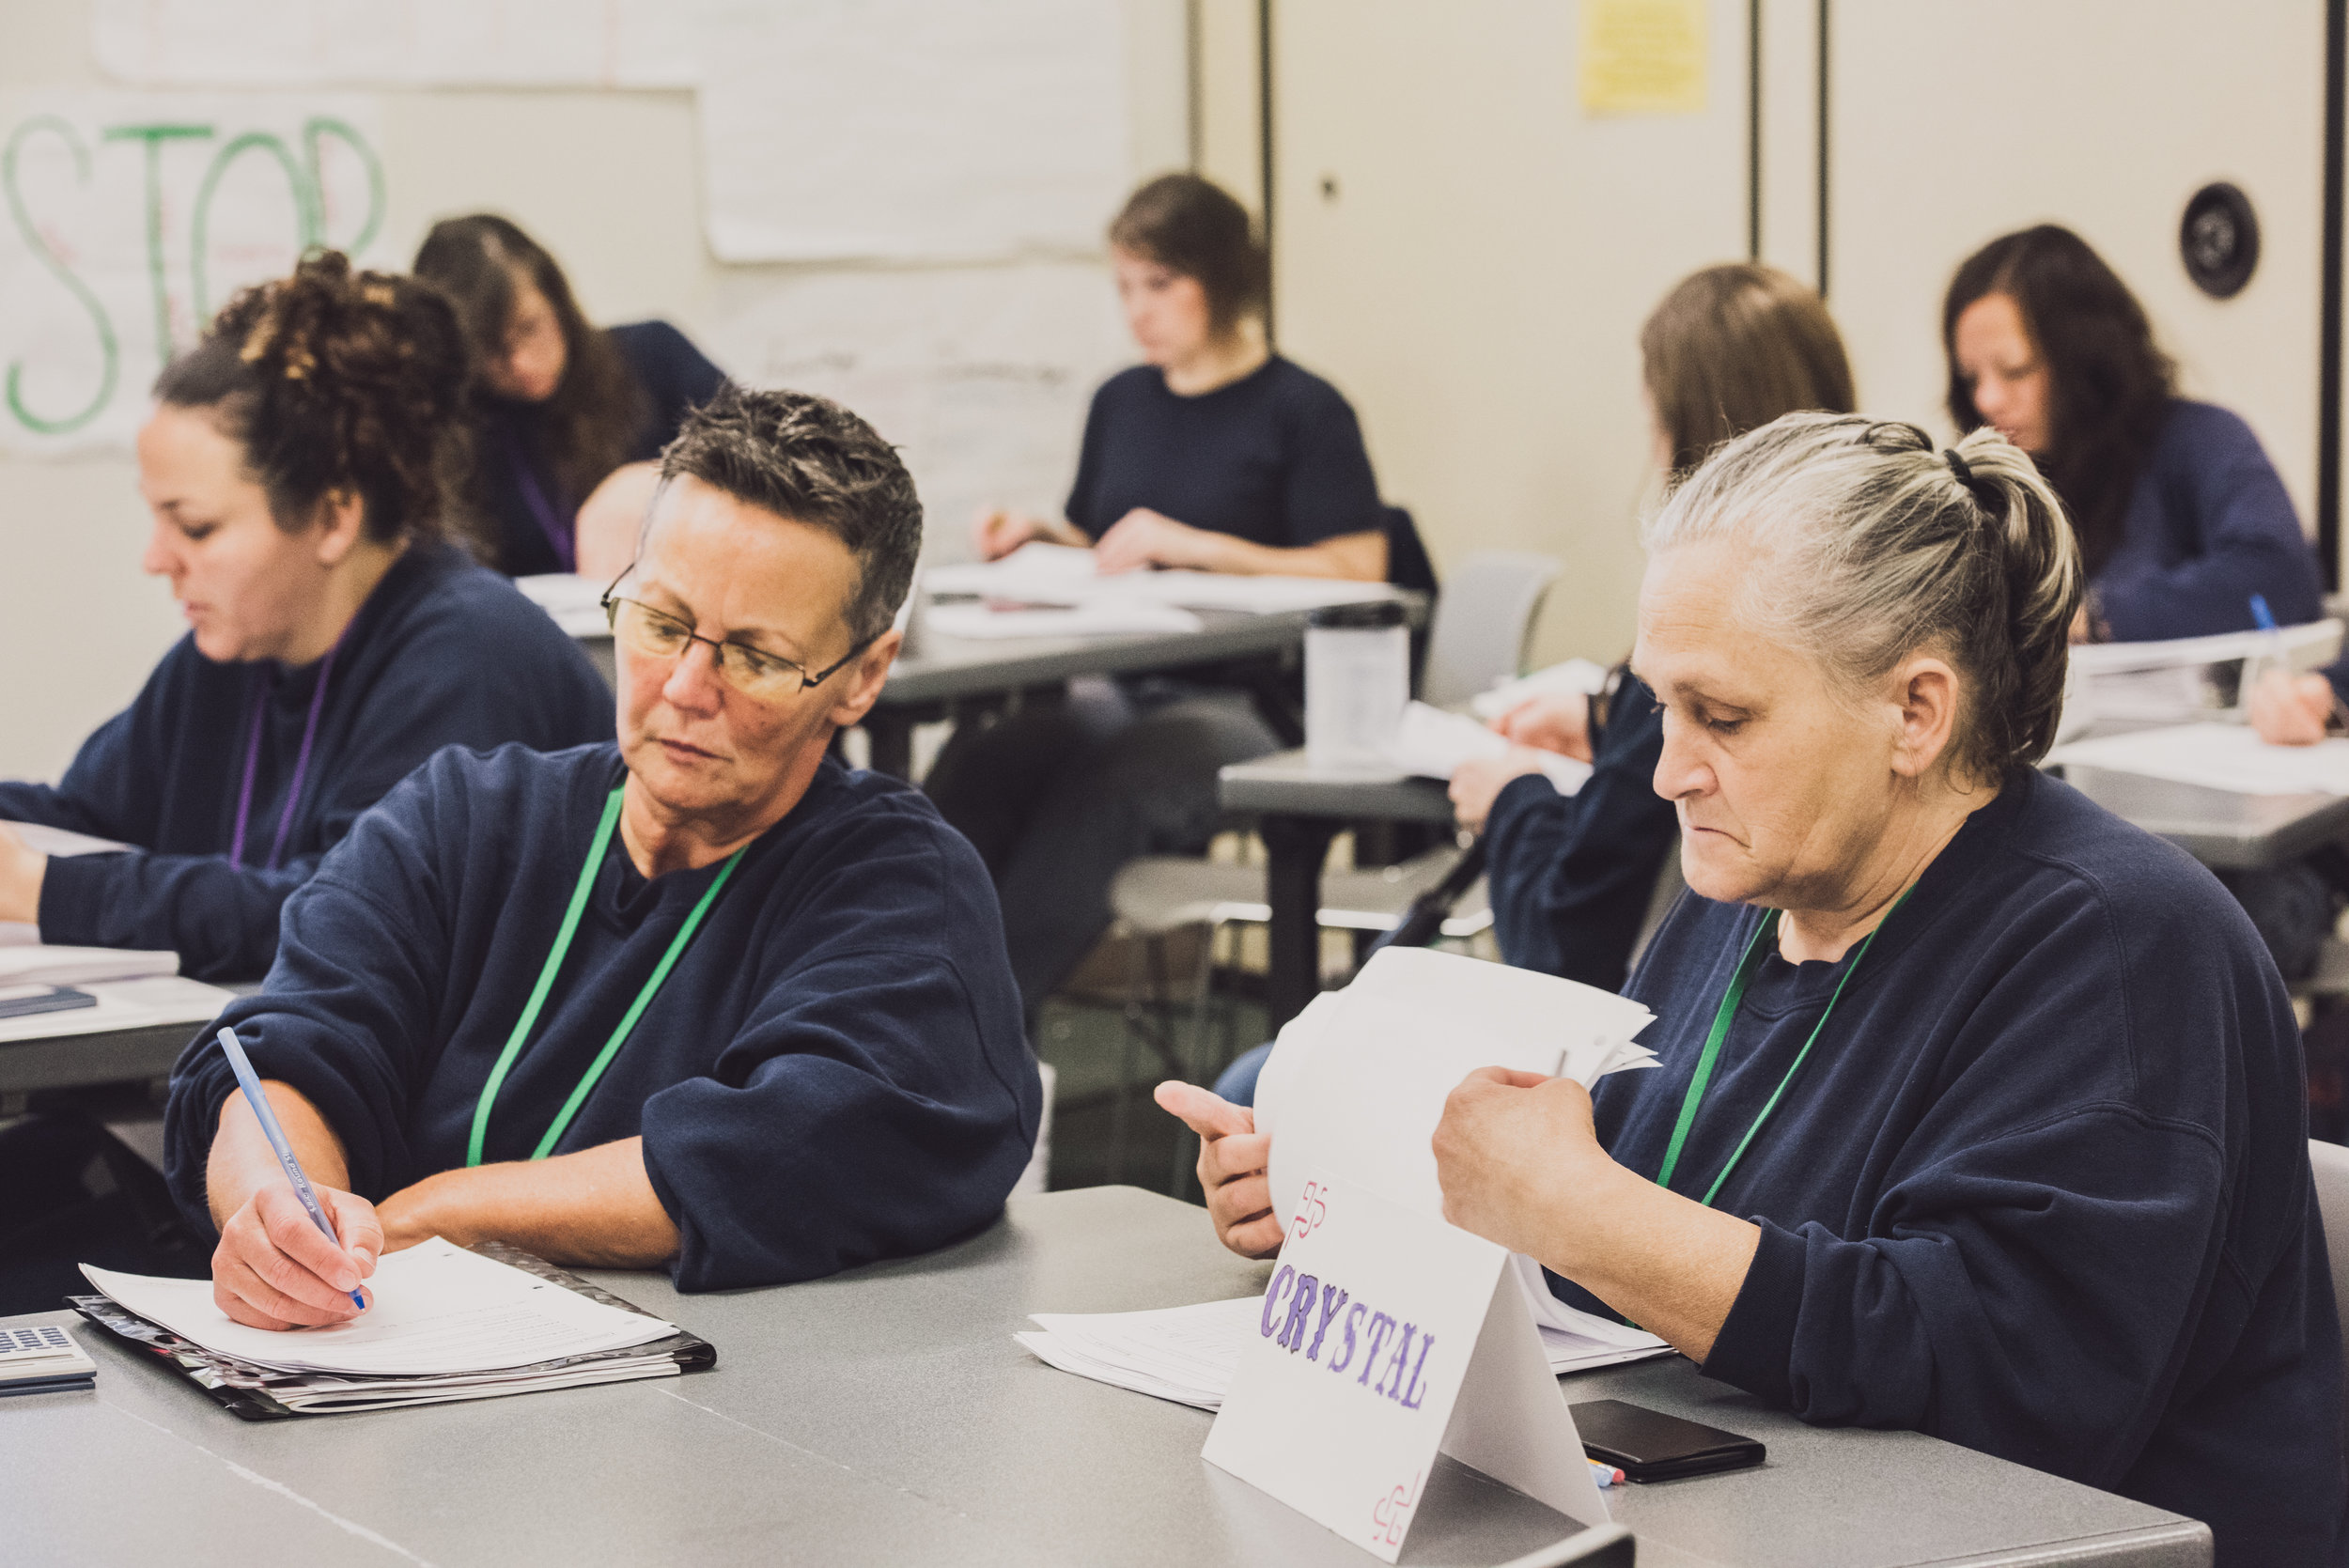 Coffee Creek - LIFE Class - Mercy Corps NW Another Look 10-29-15 2015-20.jpg